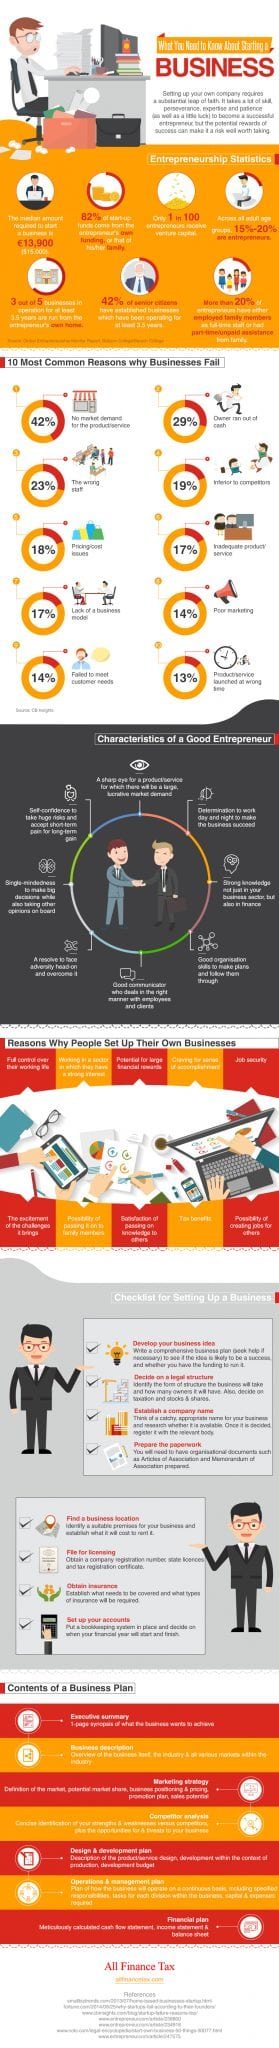 Photo of What You Need to Know About Starting a Business [INFOGRAPHIC]